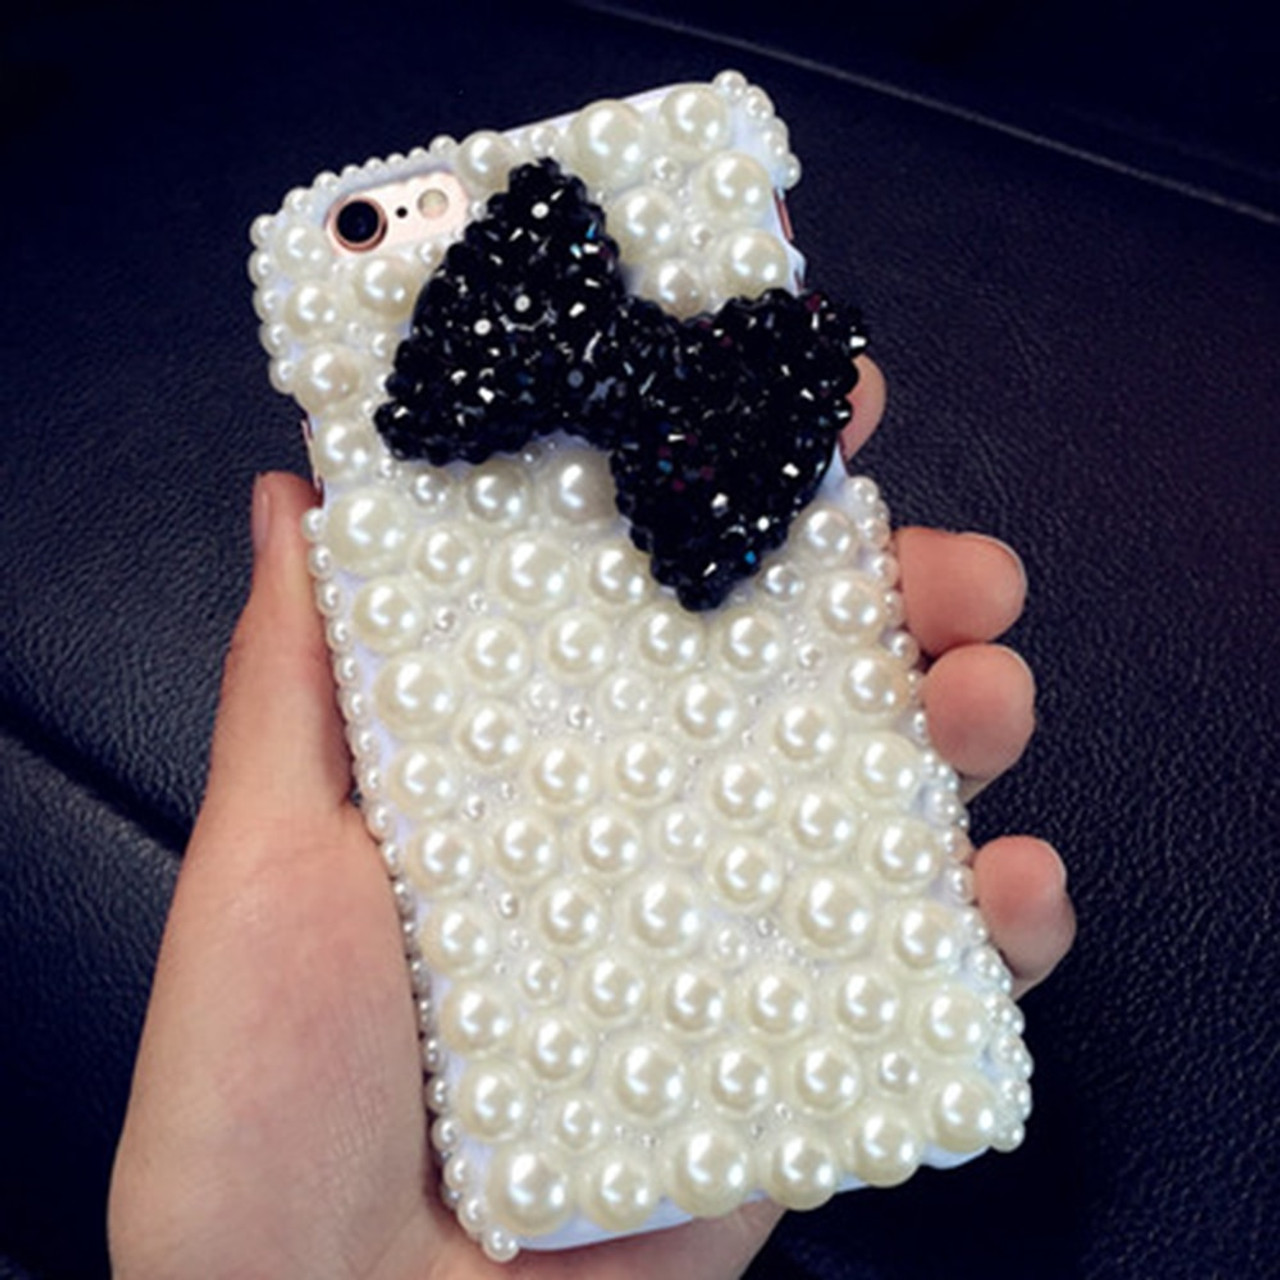 715547f76fe ... Fashion&Unique DIY Handmade Cover Diamond Bling Acrylic mobile  phone Protective shell Case For Samsung ...